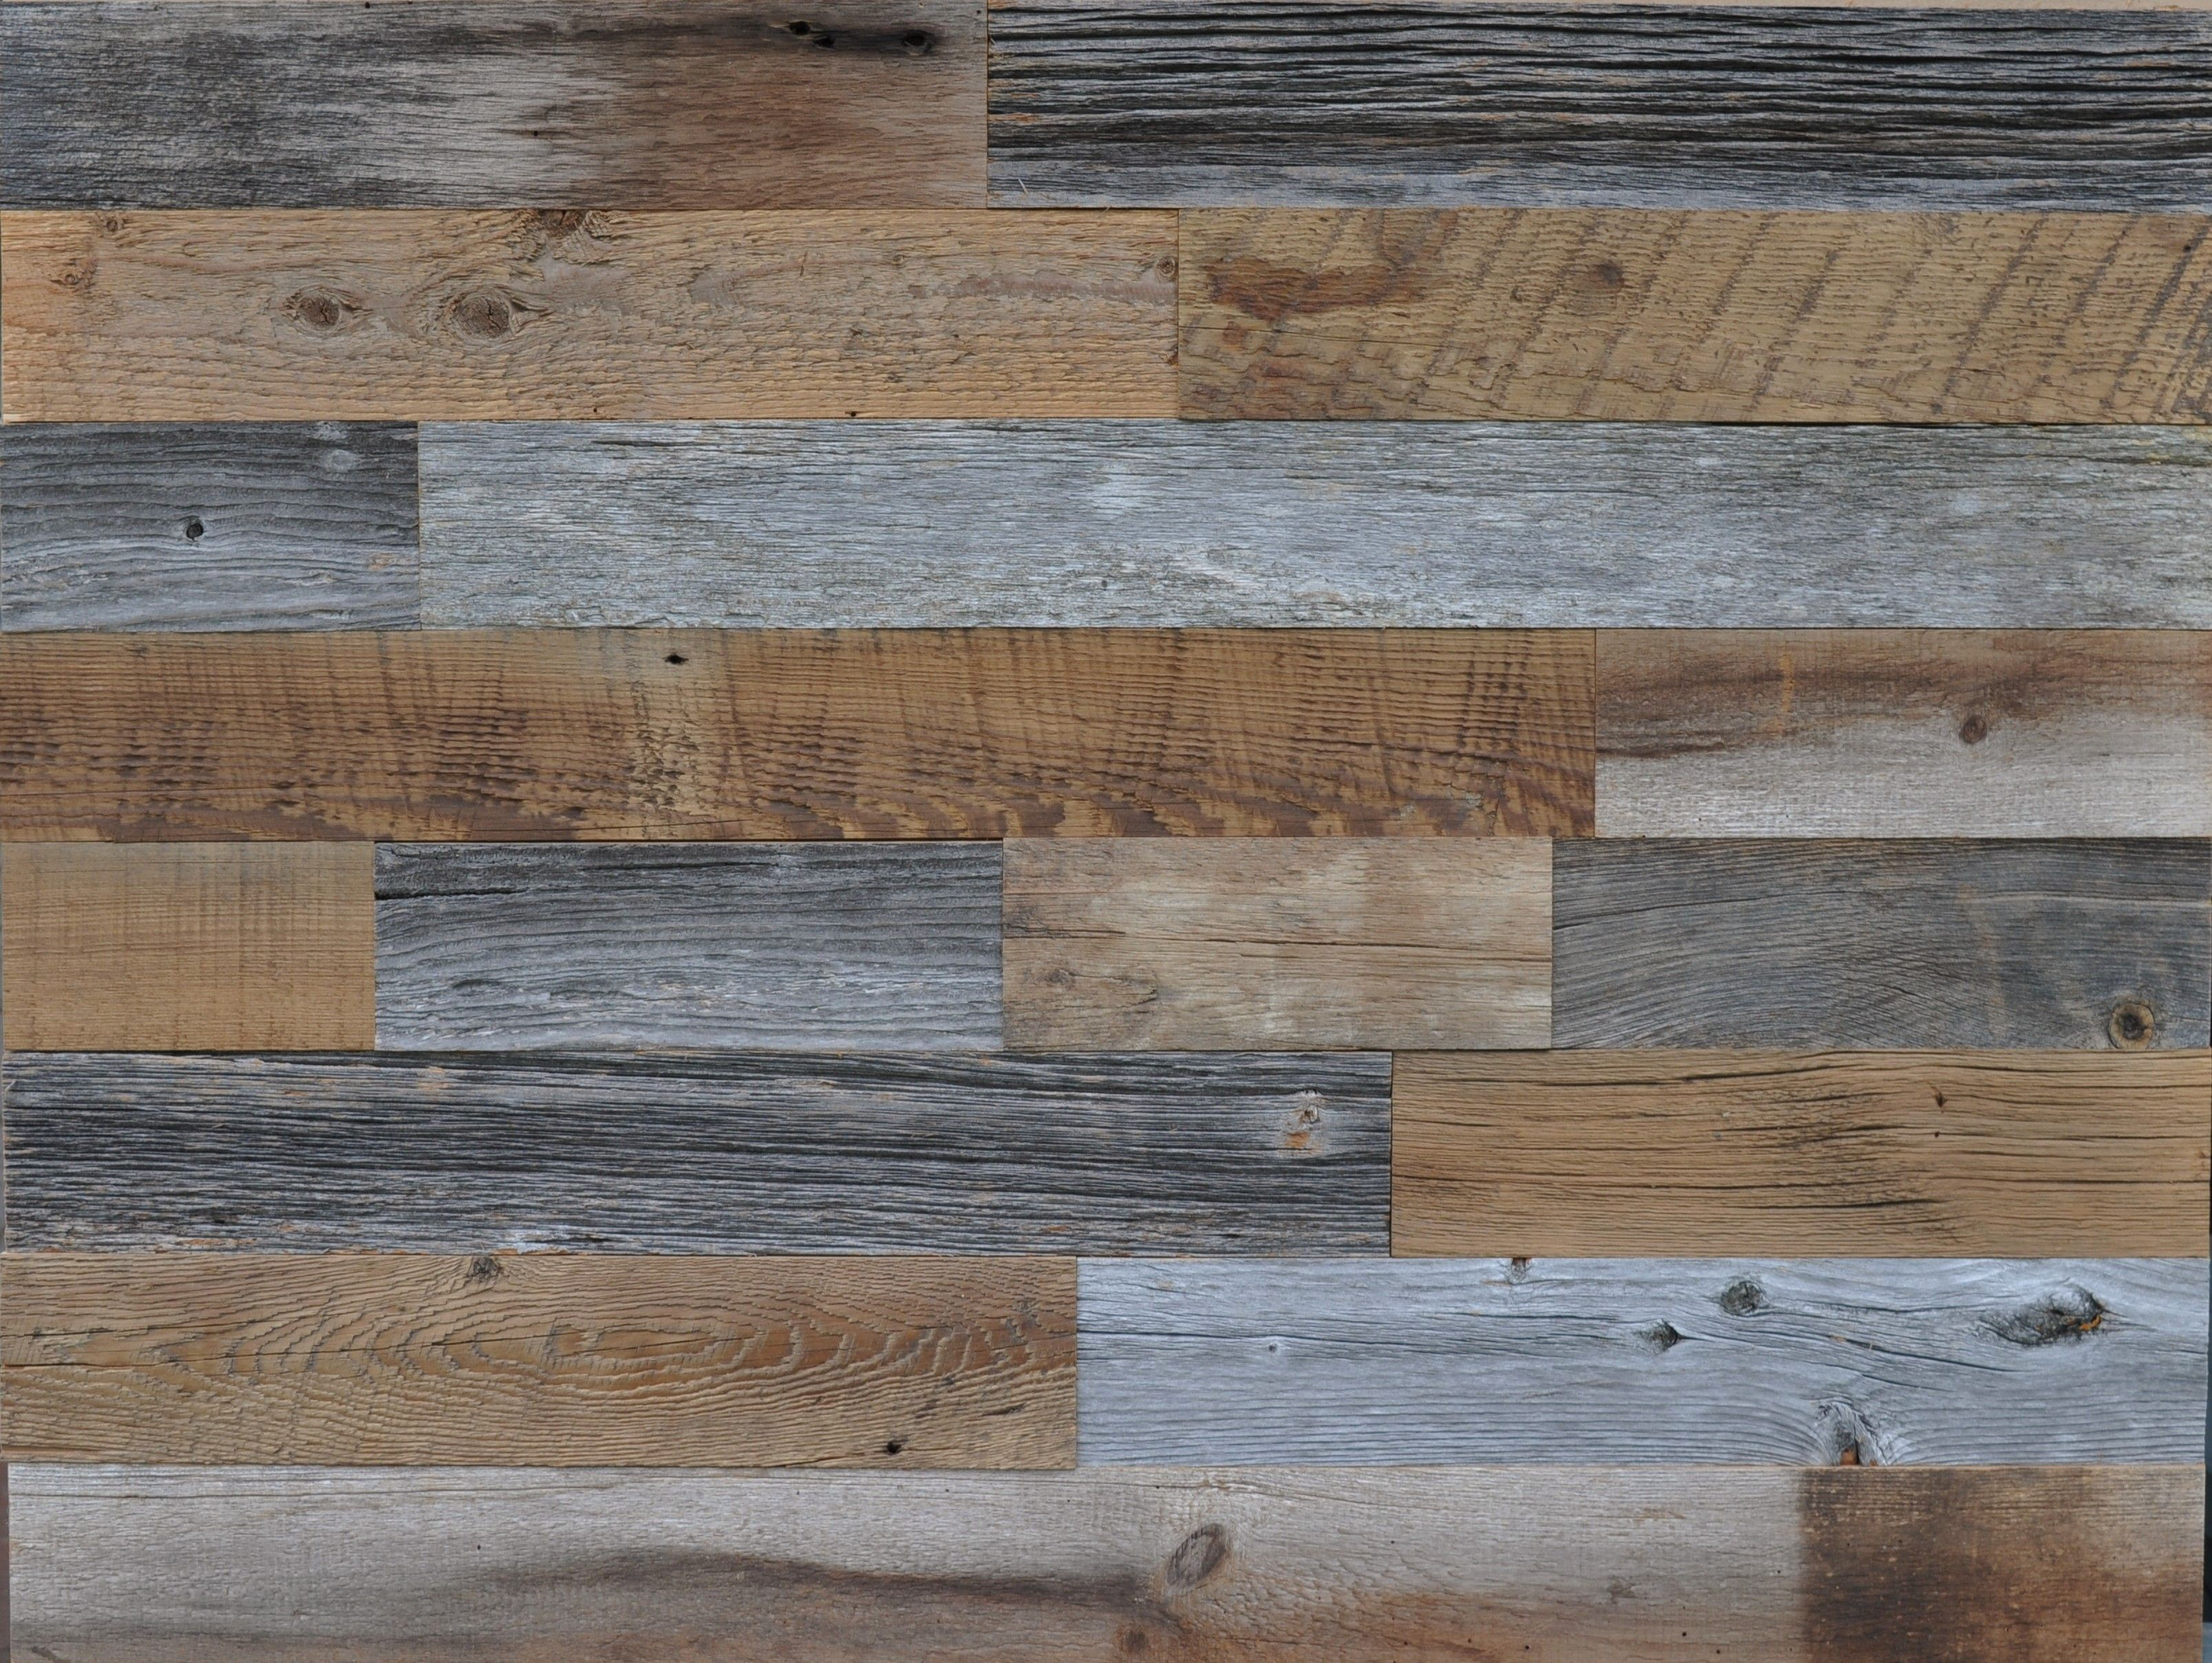 Diy Reclaimed Wood Accent Wall Grey And Brown Natural 3 5 Inch Wide Priced Per Square Foot East Coast Rustic In 2020 Wood Accent Wall Reclaimed Wood Accent Wall Reclaimed Barn Wood Wall